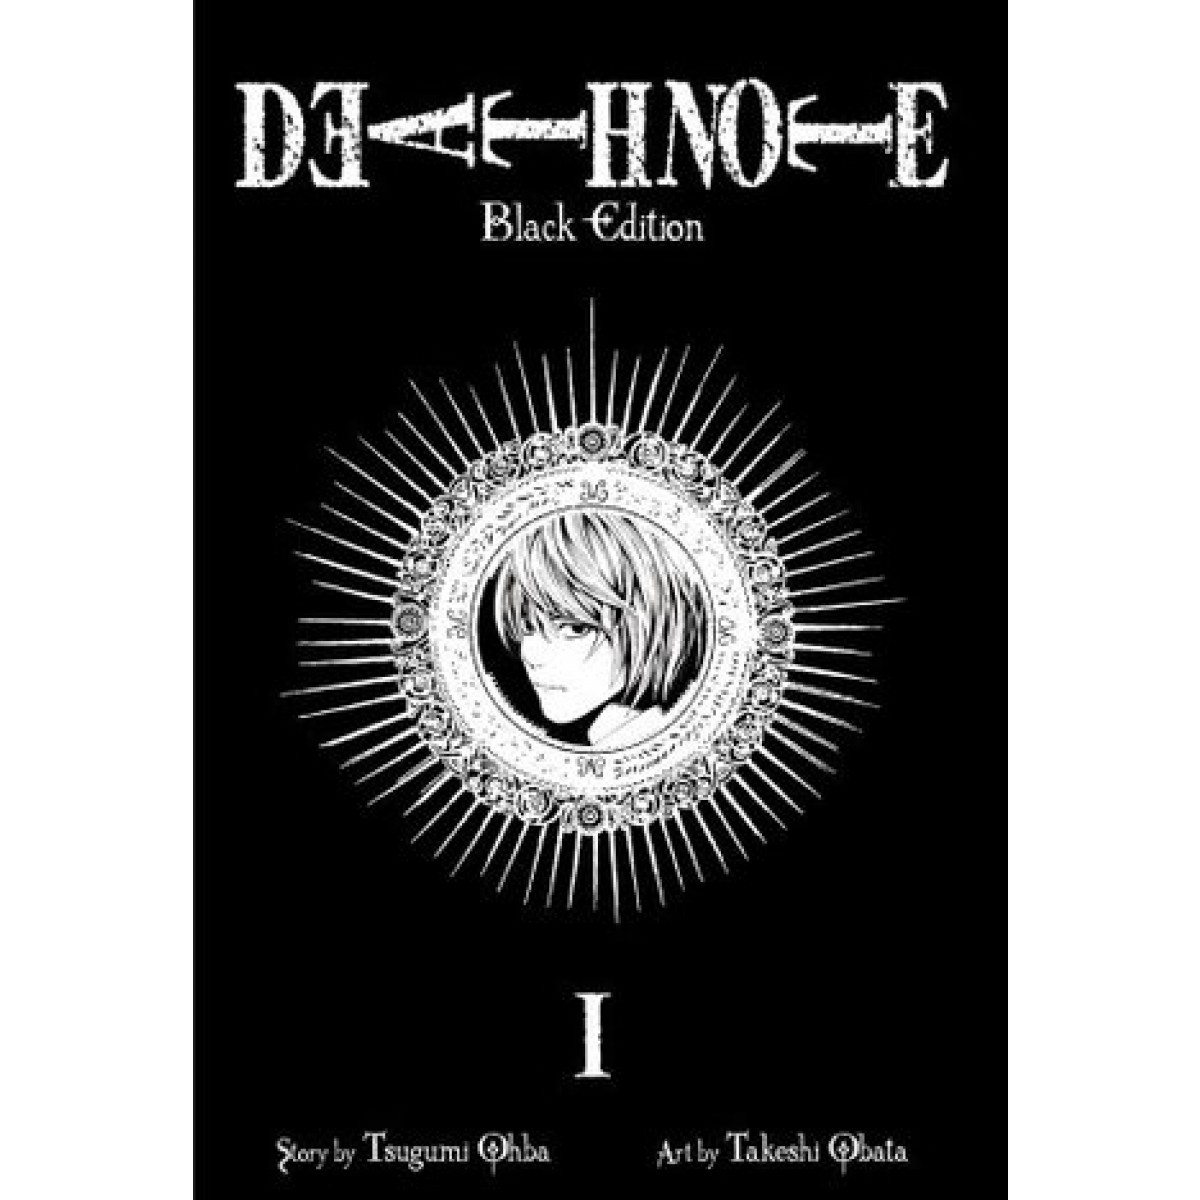 Death Note: Black Edition, Volume 1 (Death Note: Black Edition #1